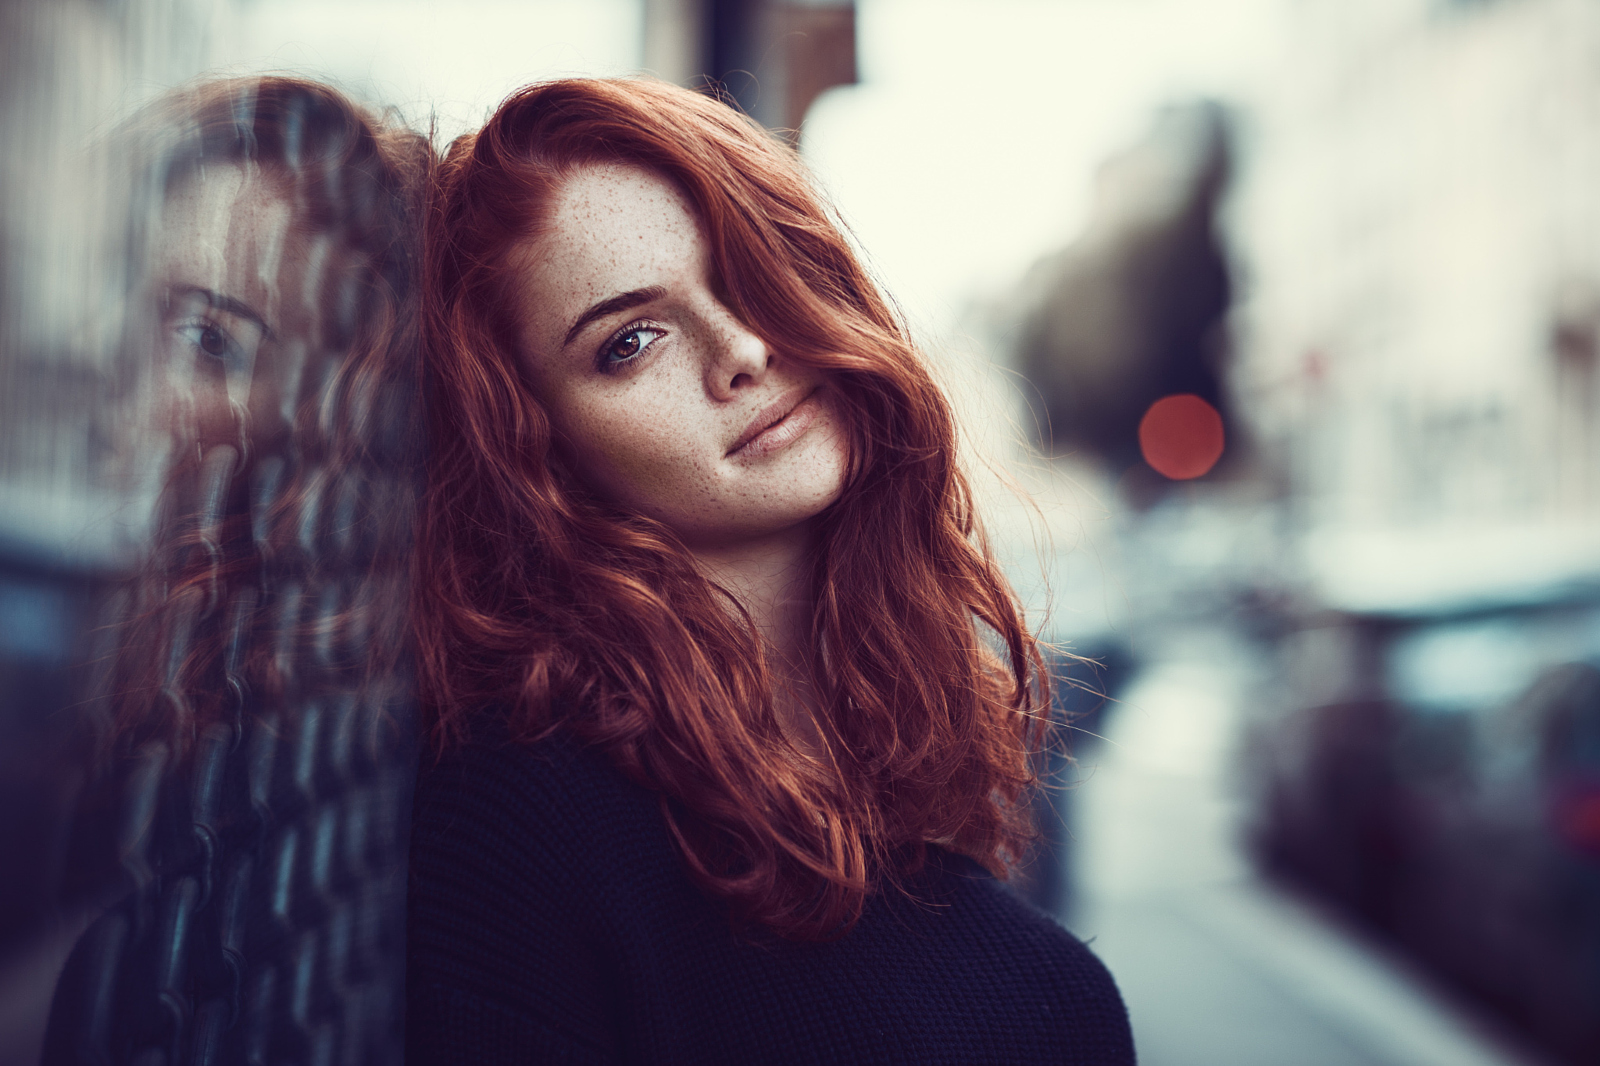 30 Beautiful Portraits that'll Make You Wish You Had Freckles - 500px Blog